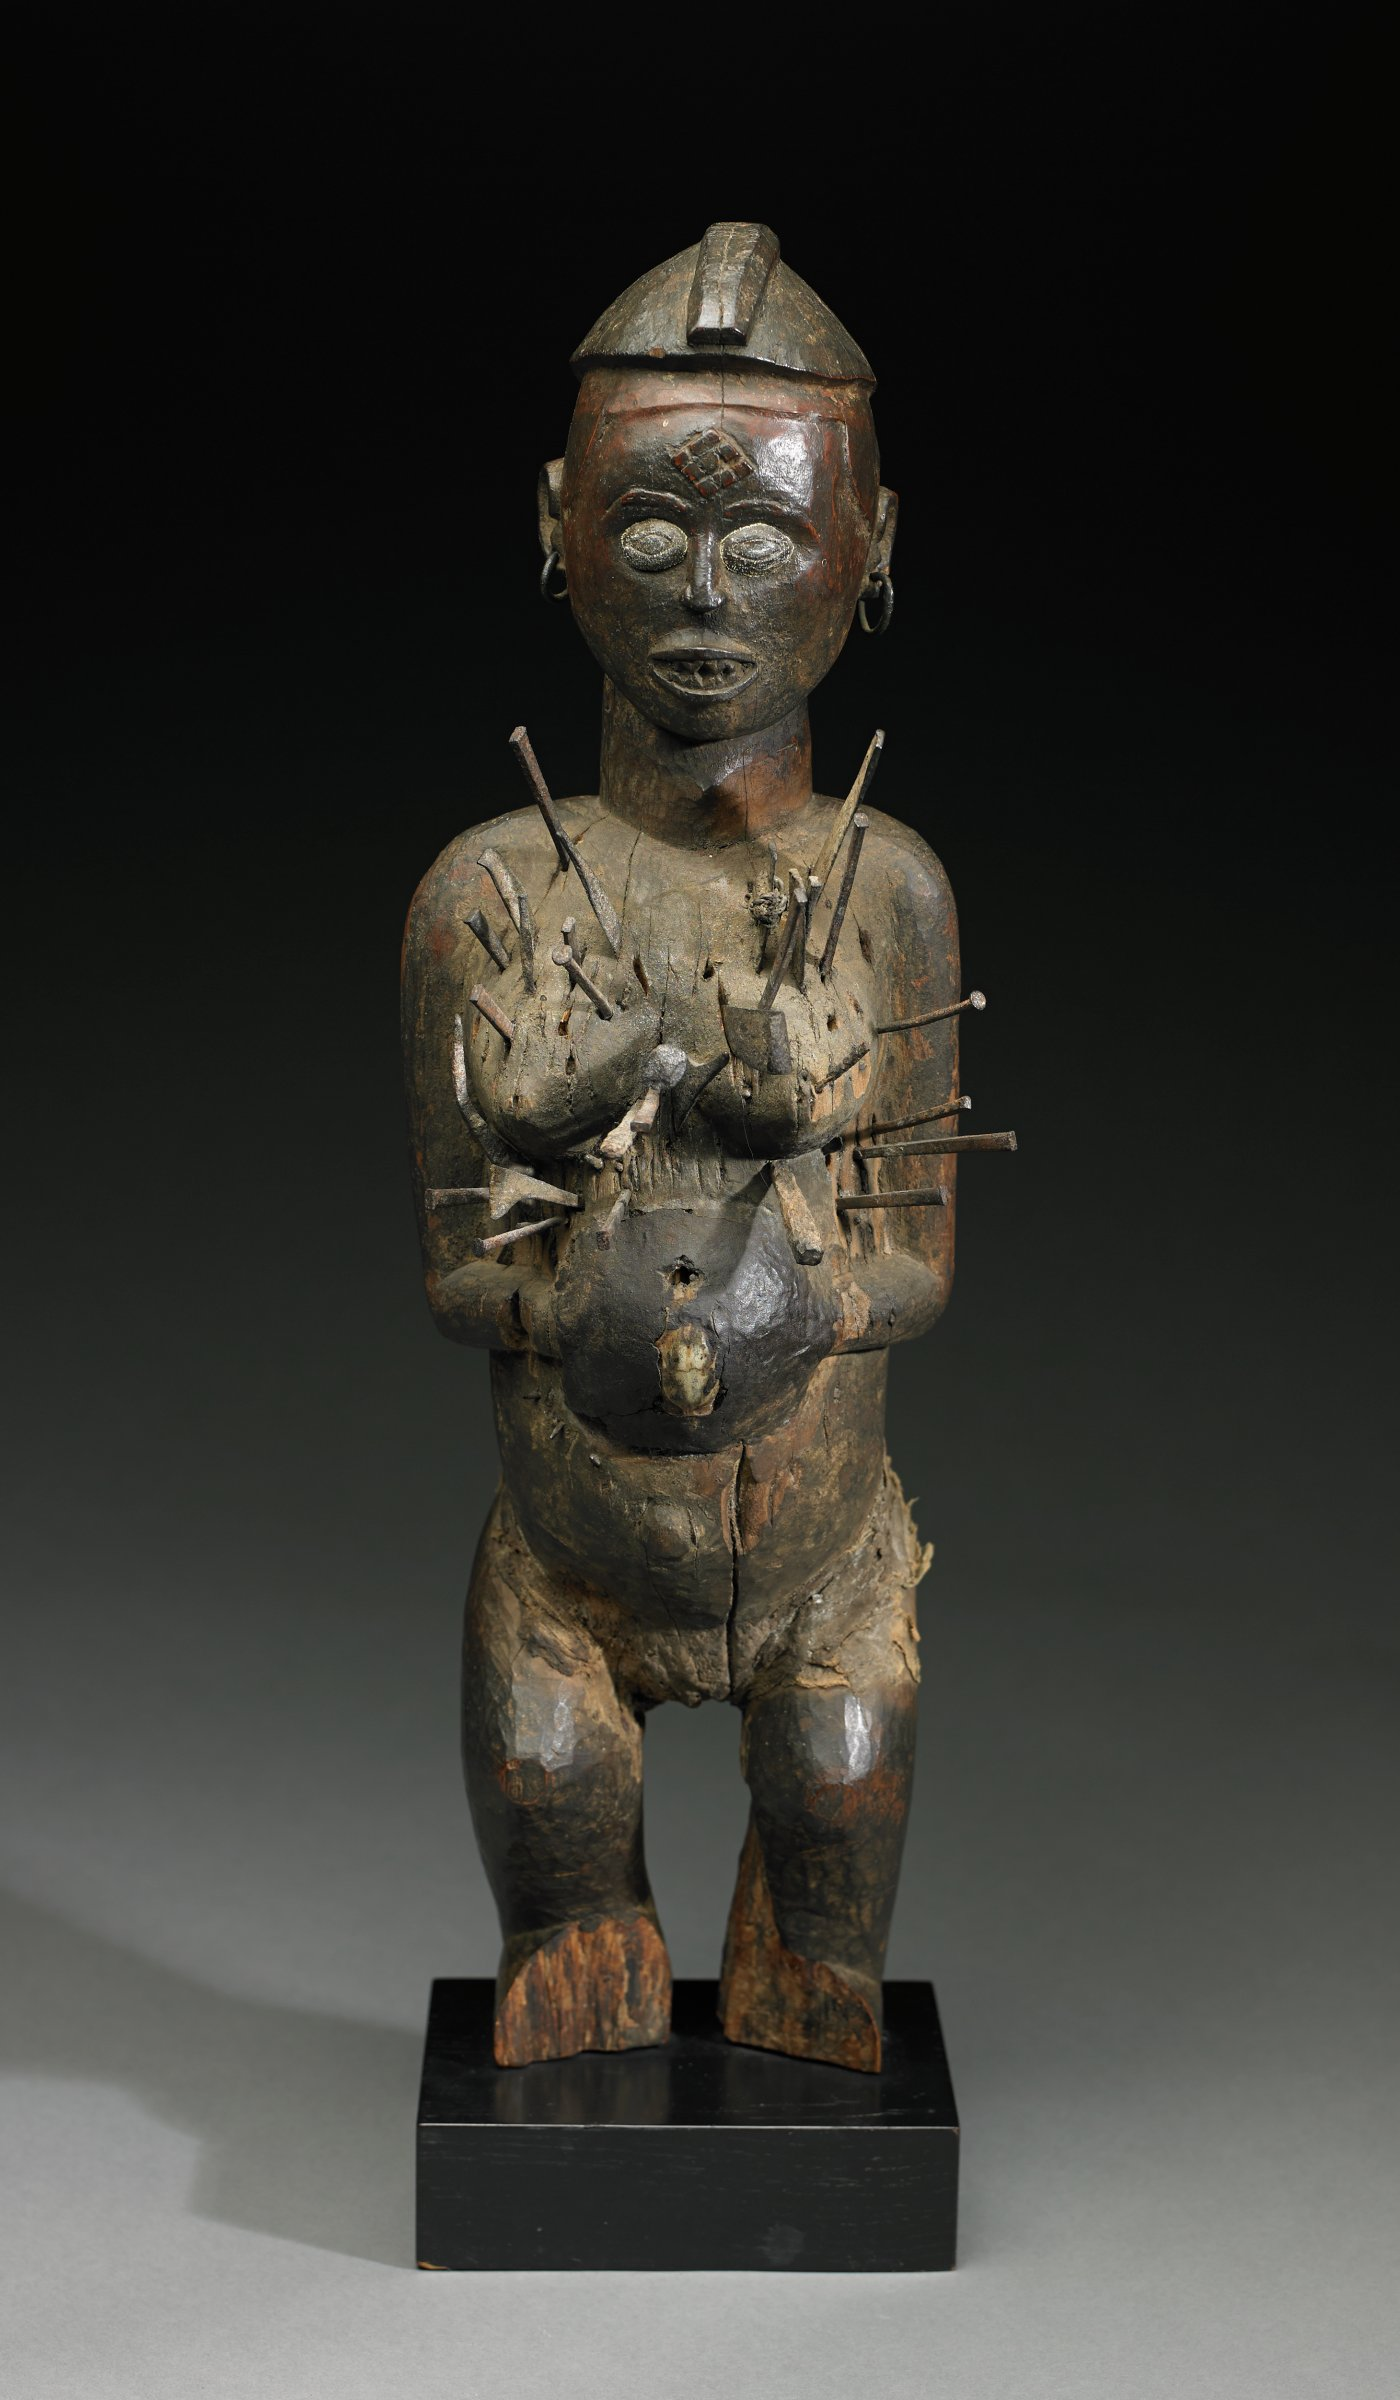 Standing female figure with flexed knees, arms bent, resting on abdomen, wearing small cap, earrings, and with diamond-shaped mark on forehead. Nails and blades protruding from breasts and front of torso, and holes remaining where some nails removed; umbilical area has small animal skull covered over with organic material. Large nail protruding from back of figure, which is split along the spine, from neck to buttocks.